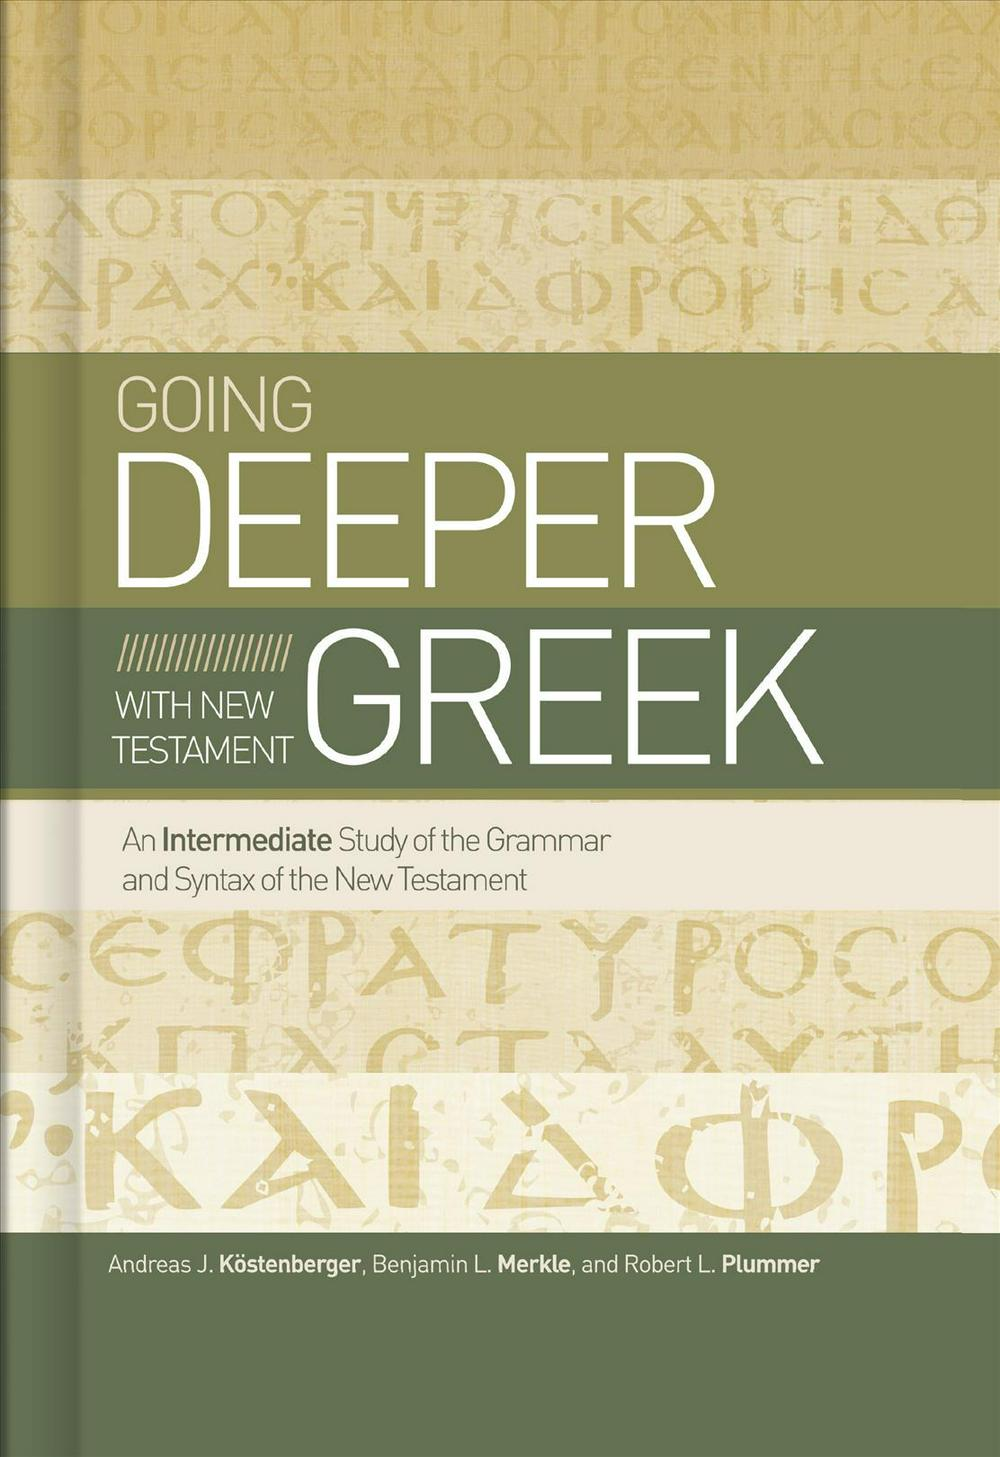 Going Deeper With New Testament Greek: An Intermediate Study of the Grammar and Syntax of the New Testament by Andreas J. Köstenberger, ISBN: 9781433679087